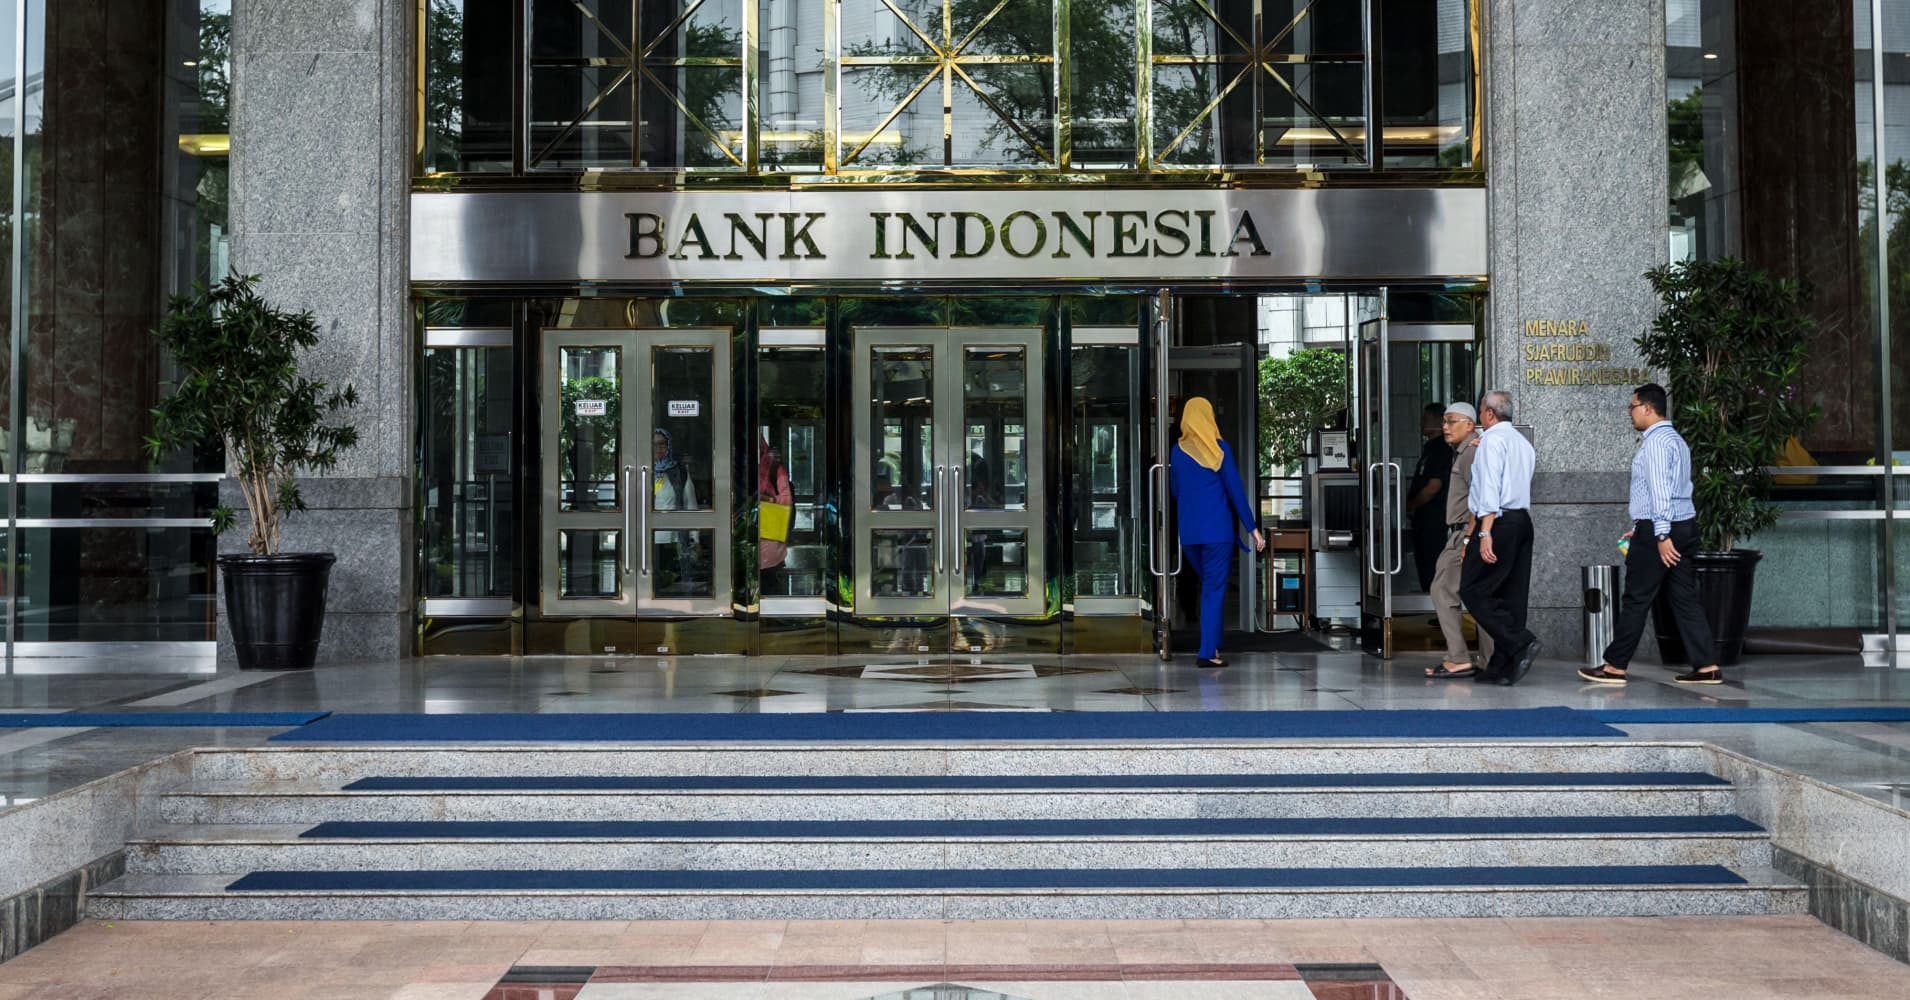 Fed's rate pause is an 'opportunity' for Indonesia to spur growth, says its finance minister